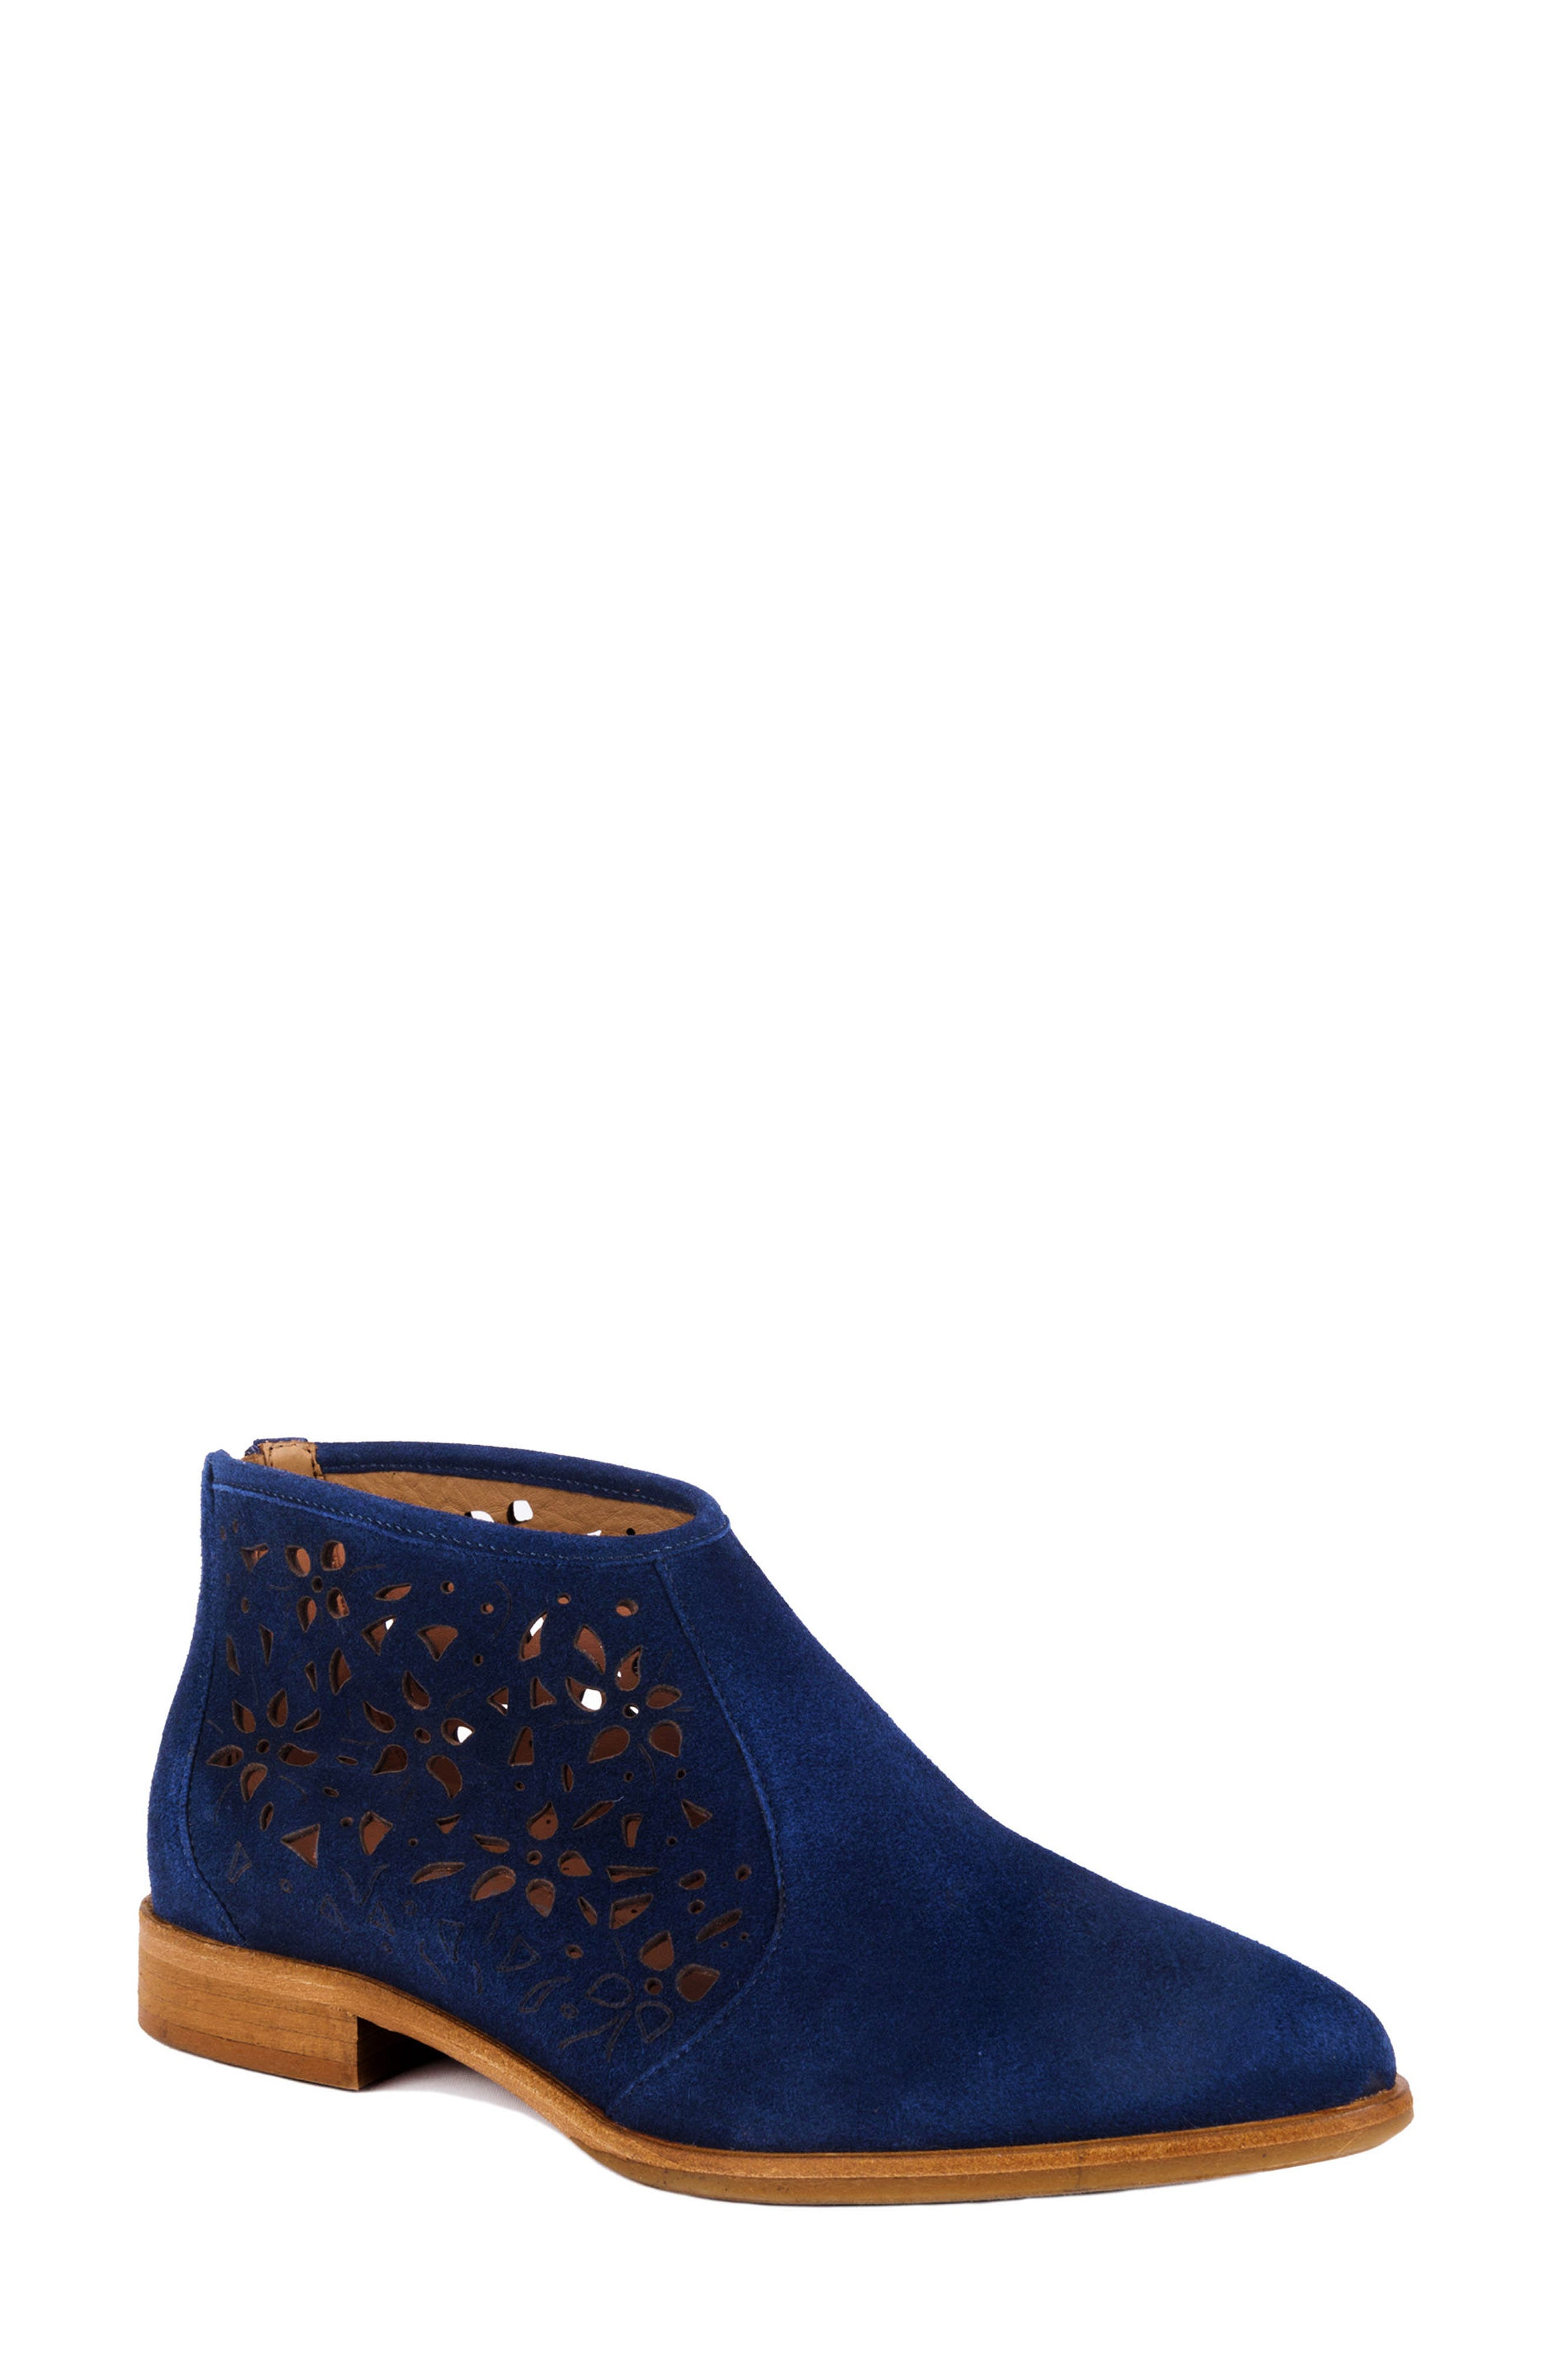 Perla Eyelet Detail Bootie,                         Main,                         color, Navy